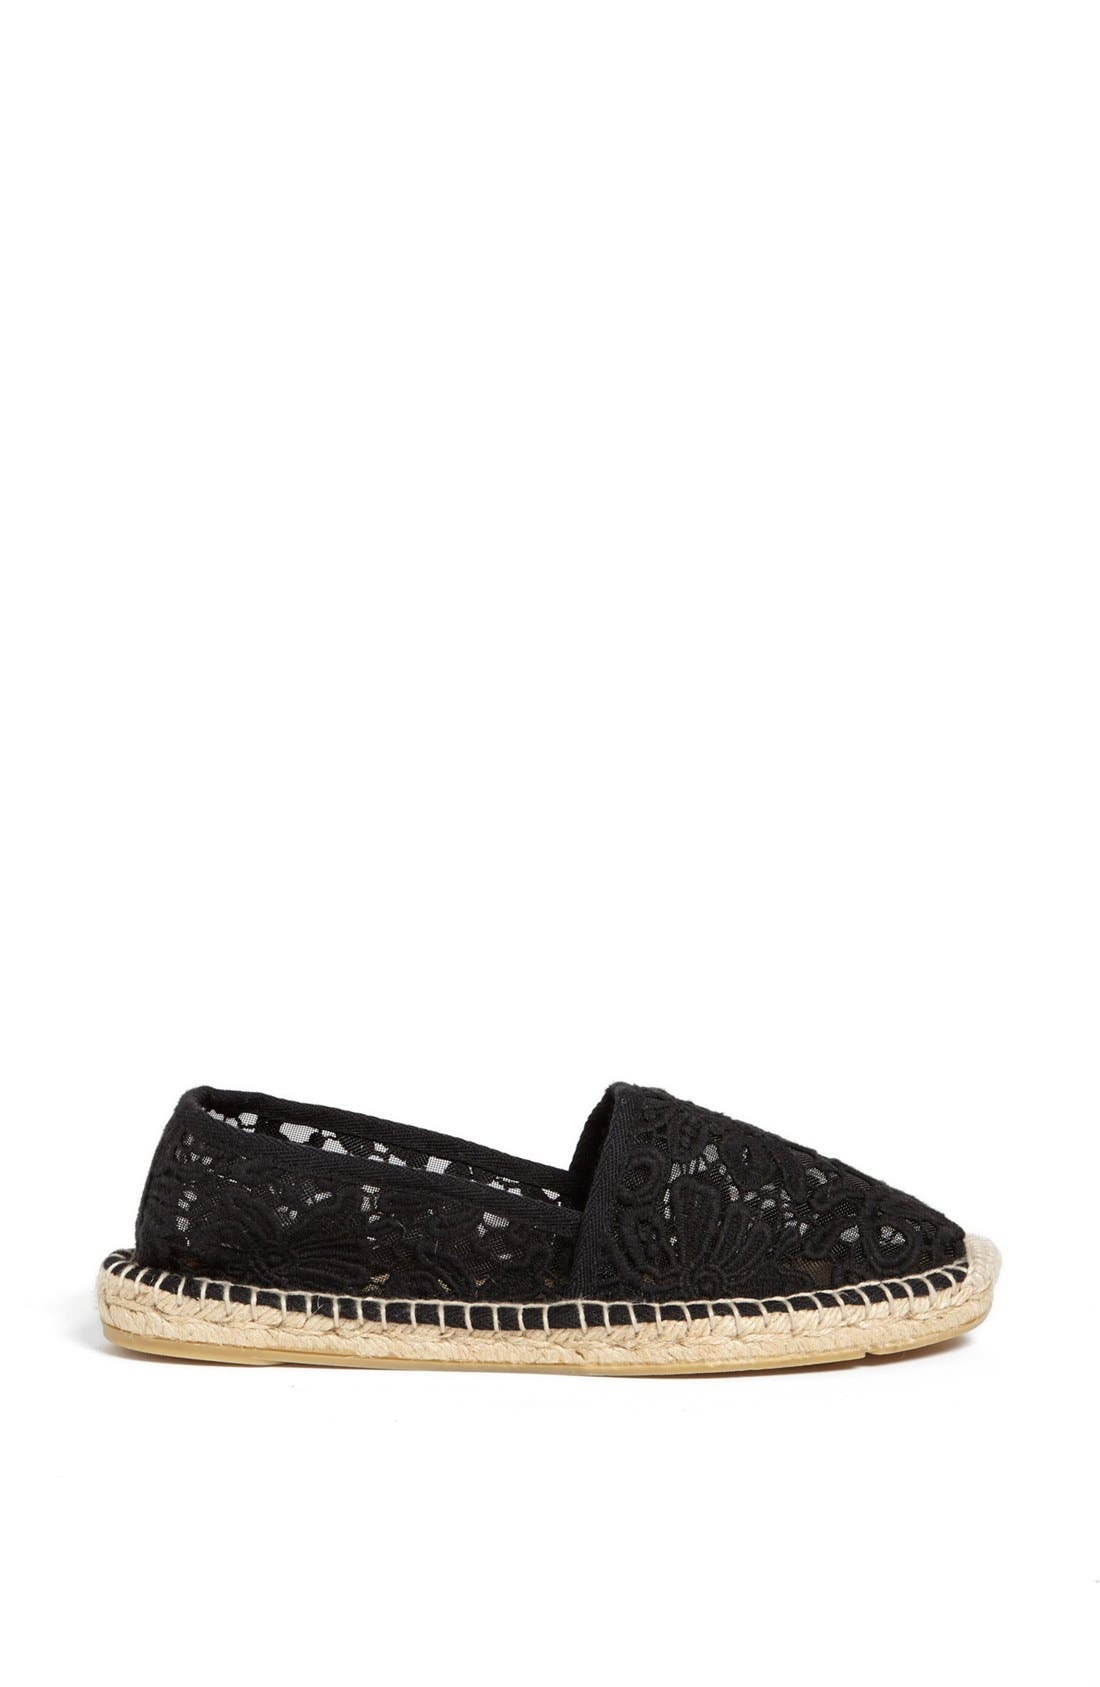 TORY BURCH,                             'Abbe' Espadrille,                             Alternate thumbnail 3, color,                             001